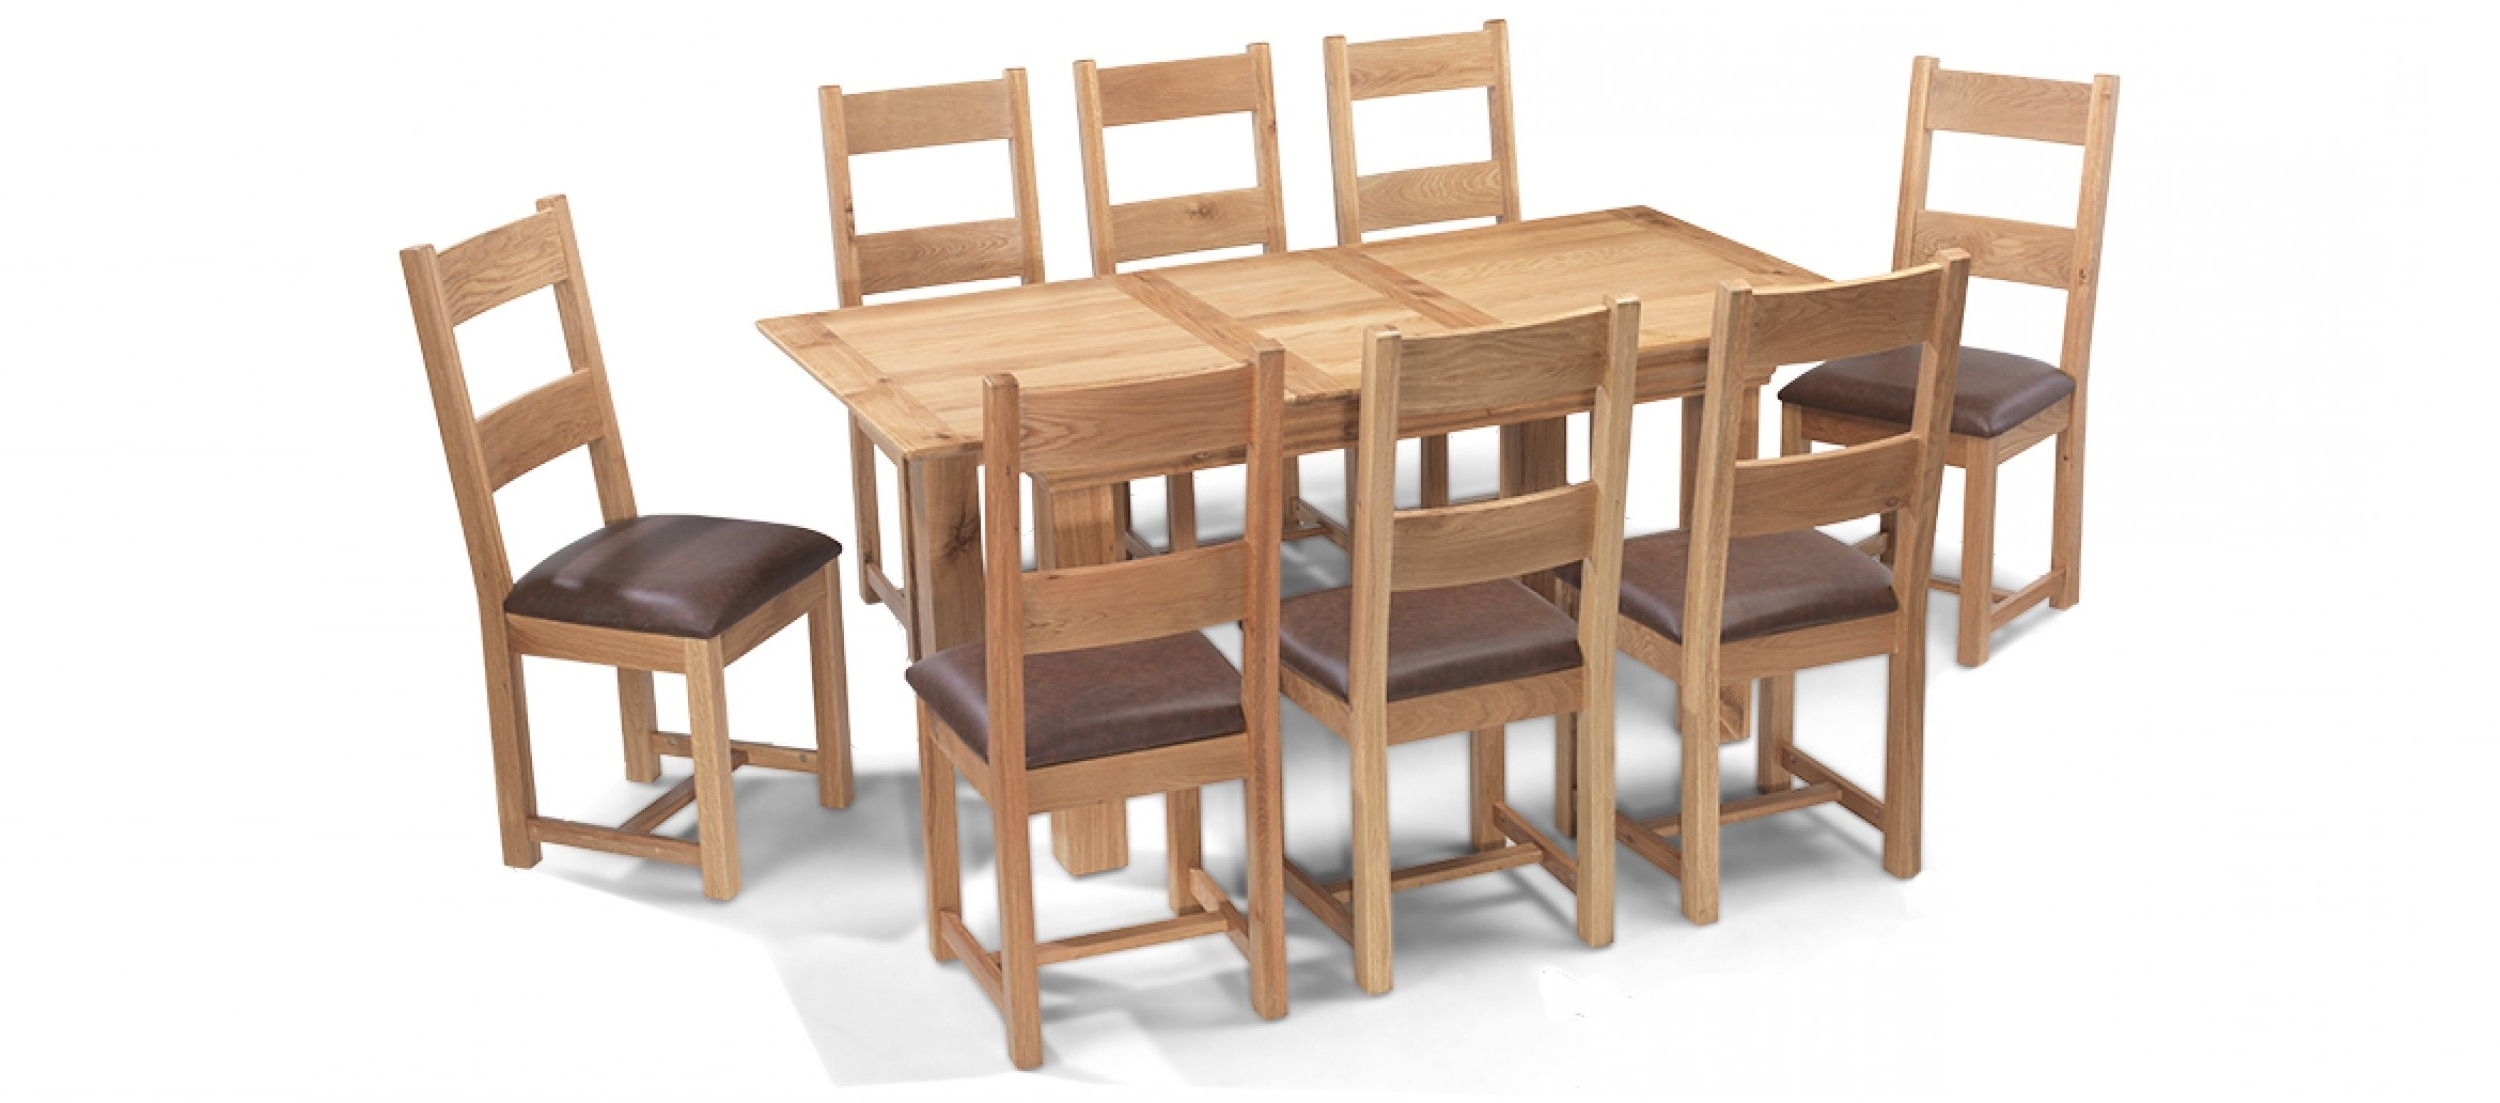 Oak Dining Tables And 8 Chairs Within Most Recently Released Constance Oak 140 180 Cm Extending Dining Table And 8 Chairs (View 21 of 25)